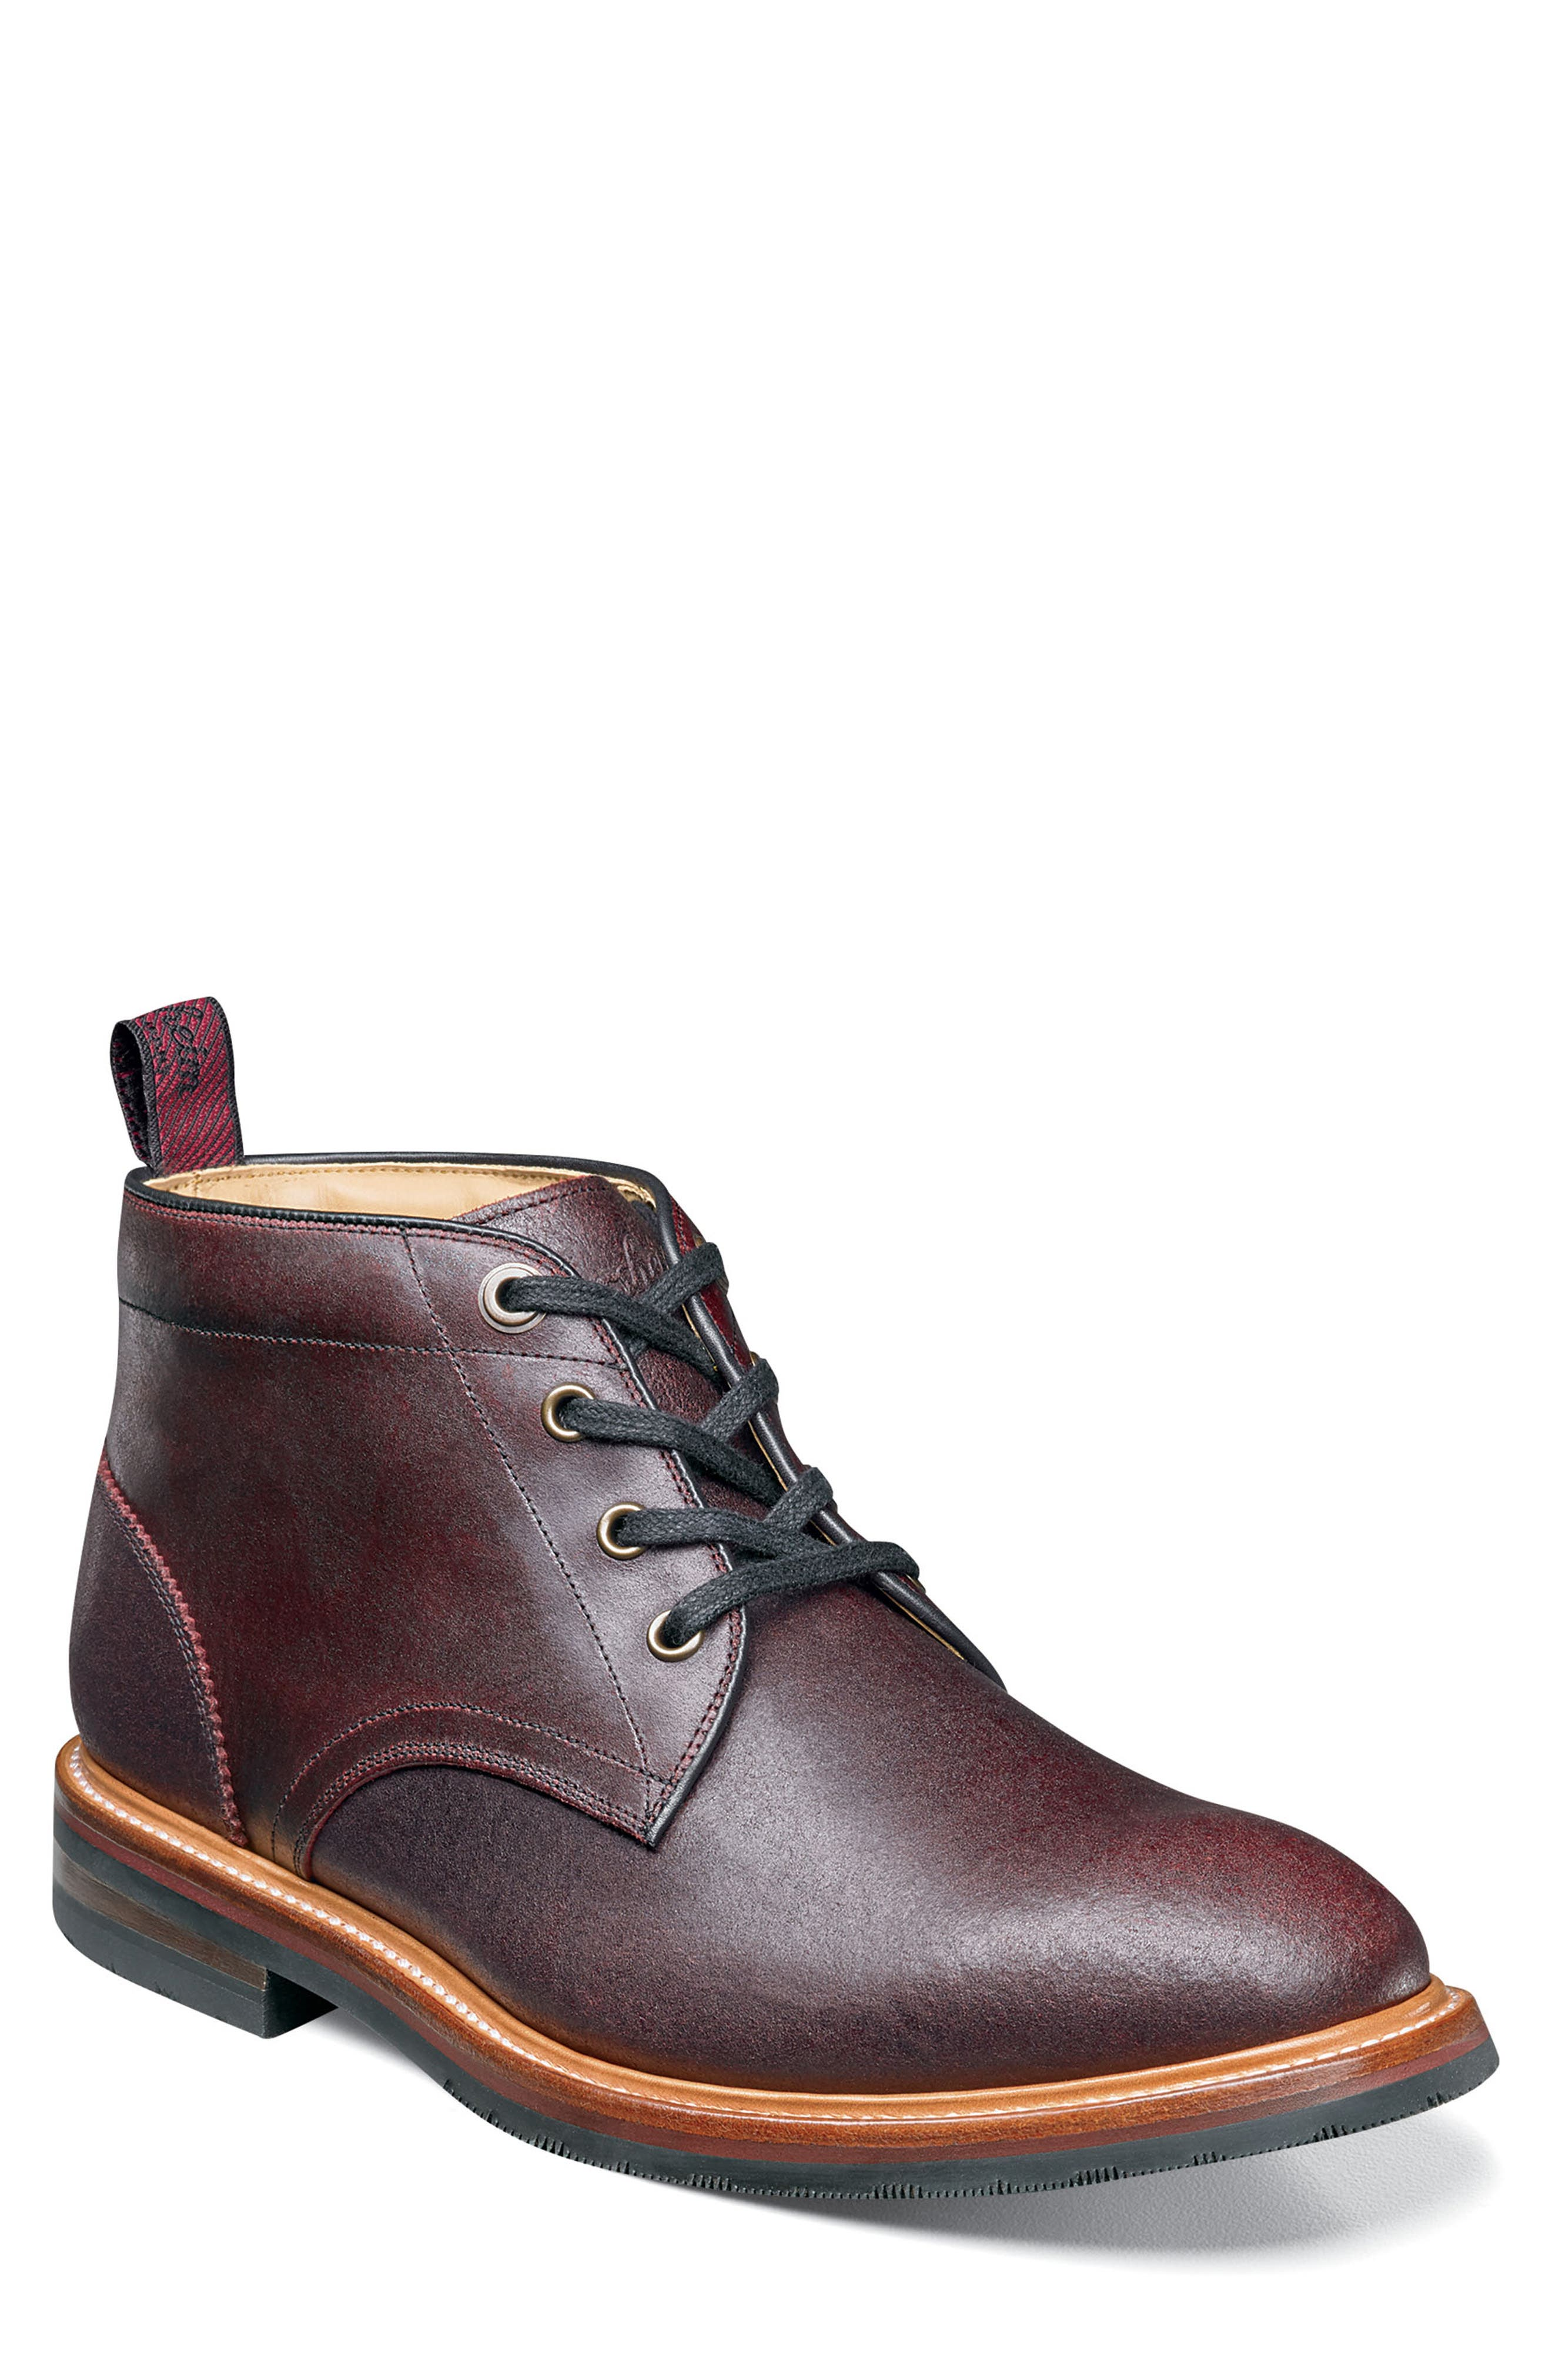 Florsheim Foundry Leather Boot, Burgundy